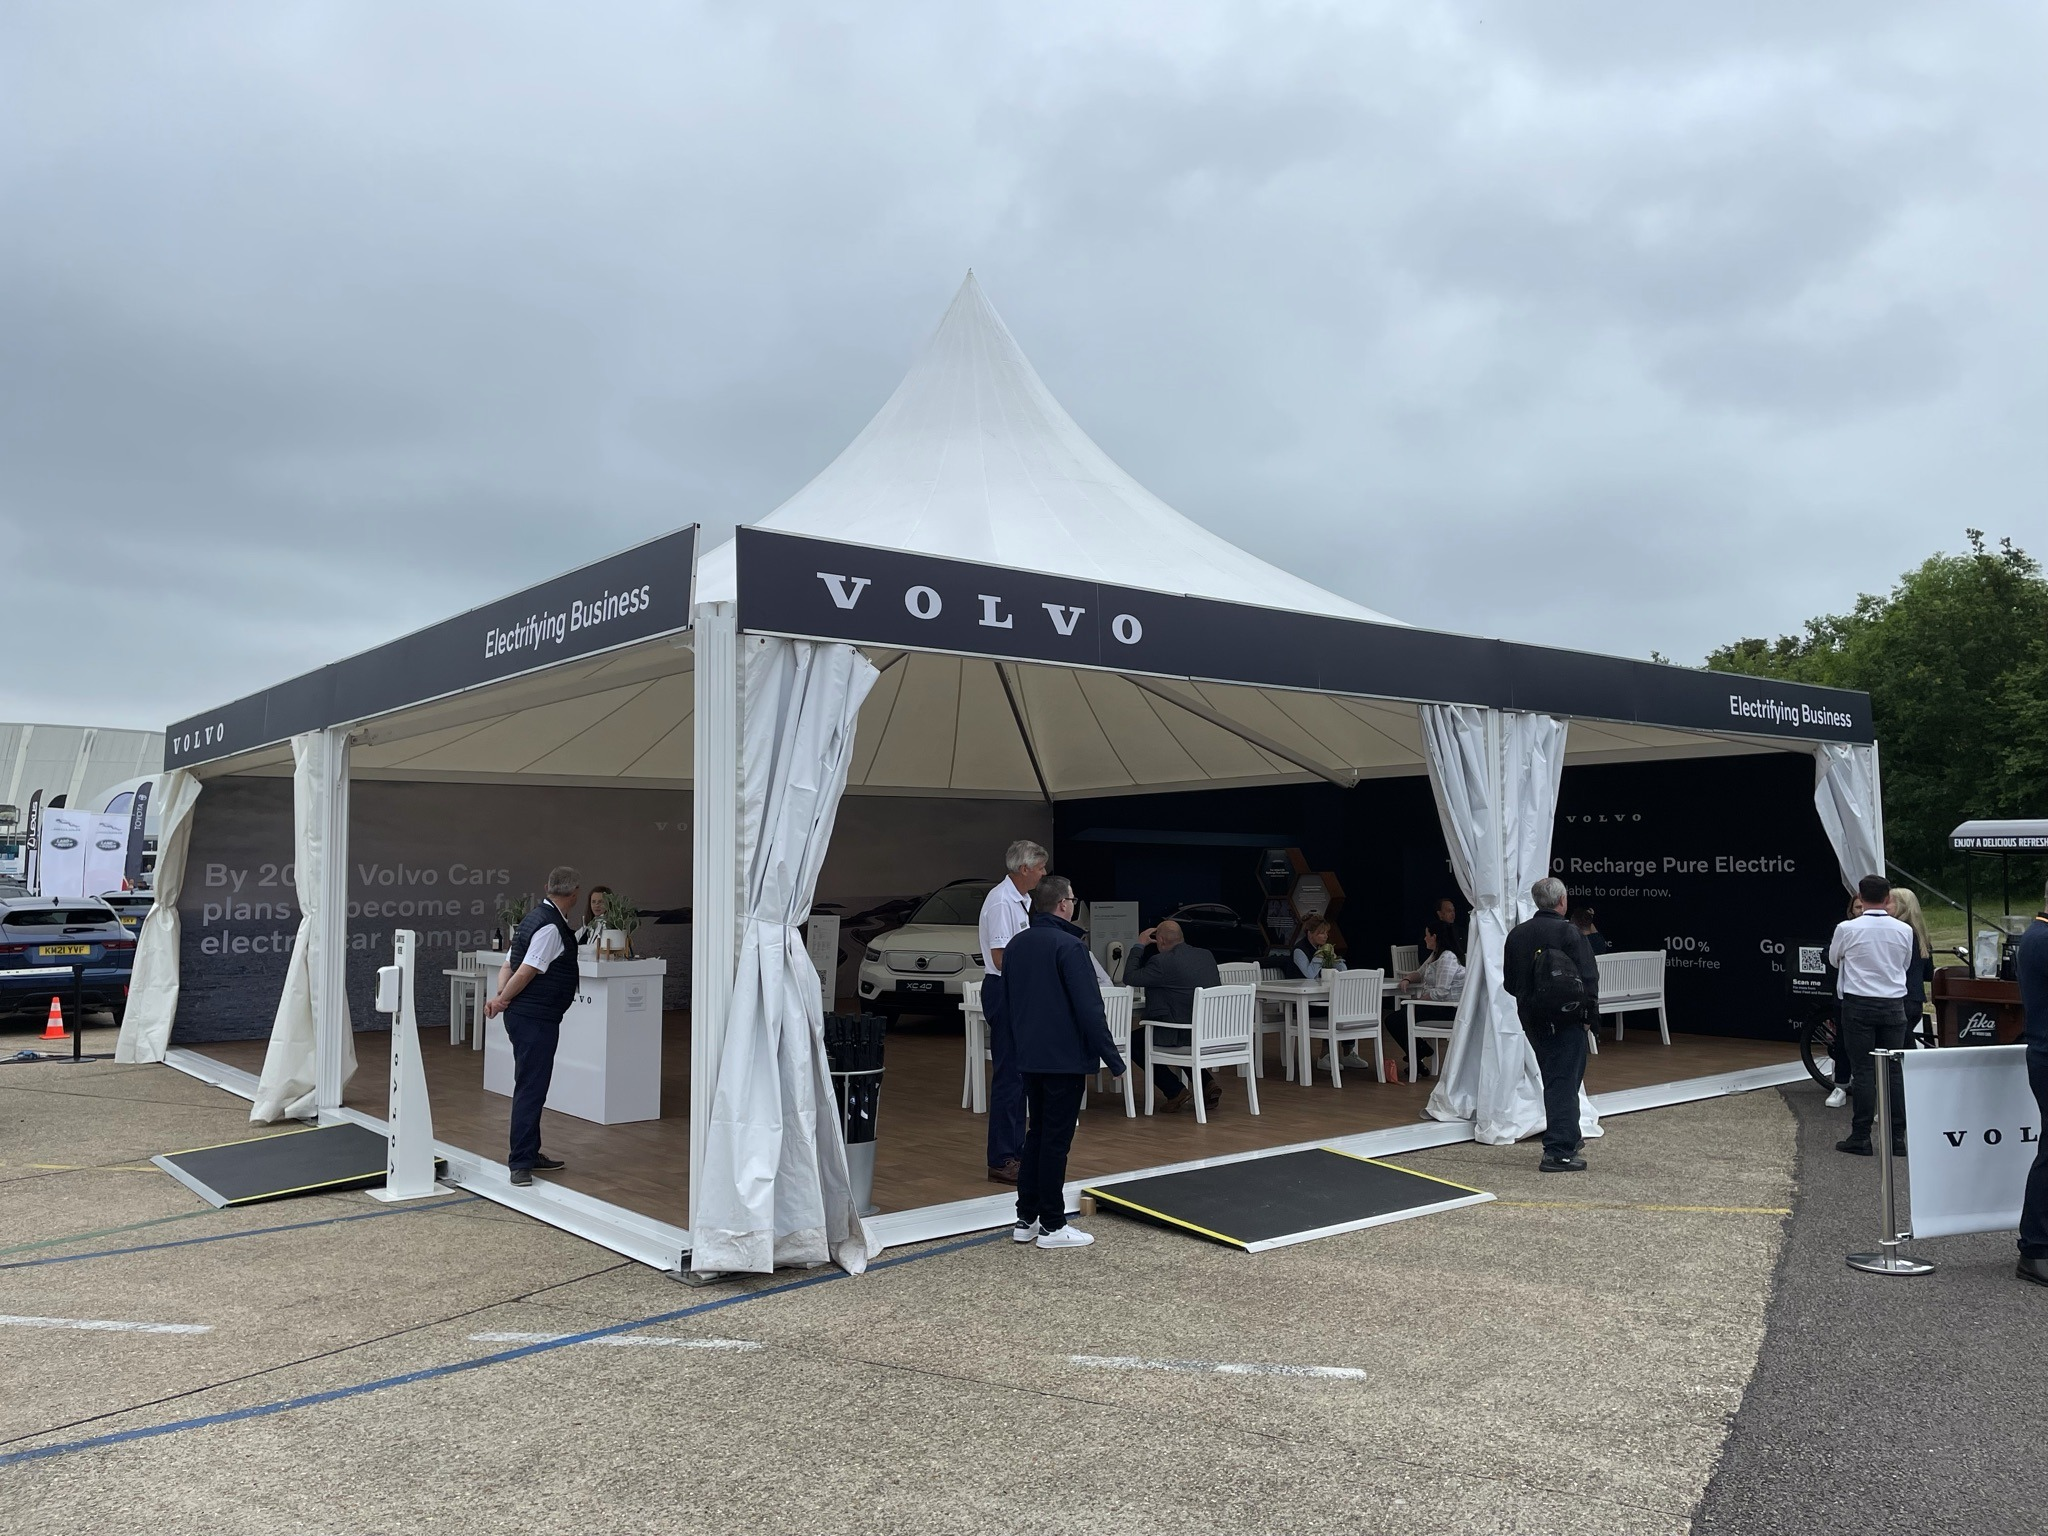 Volvo Ext - Structures